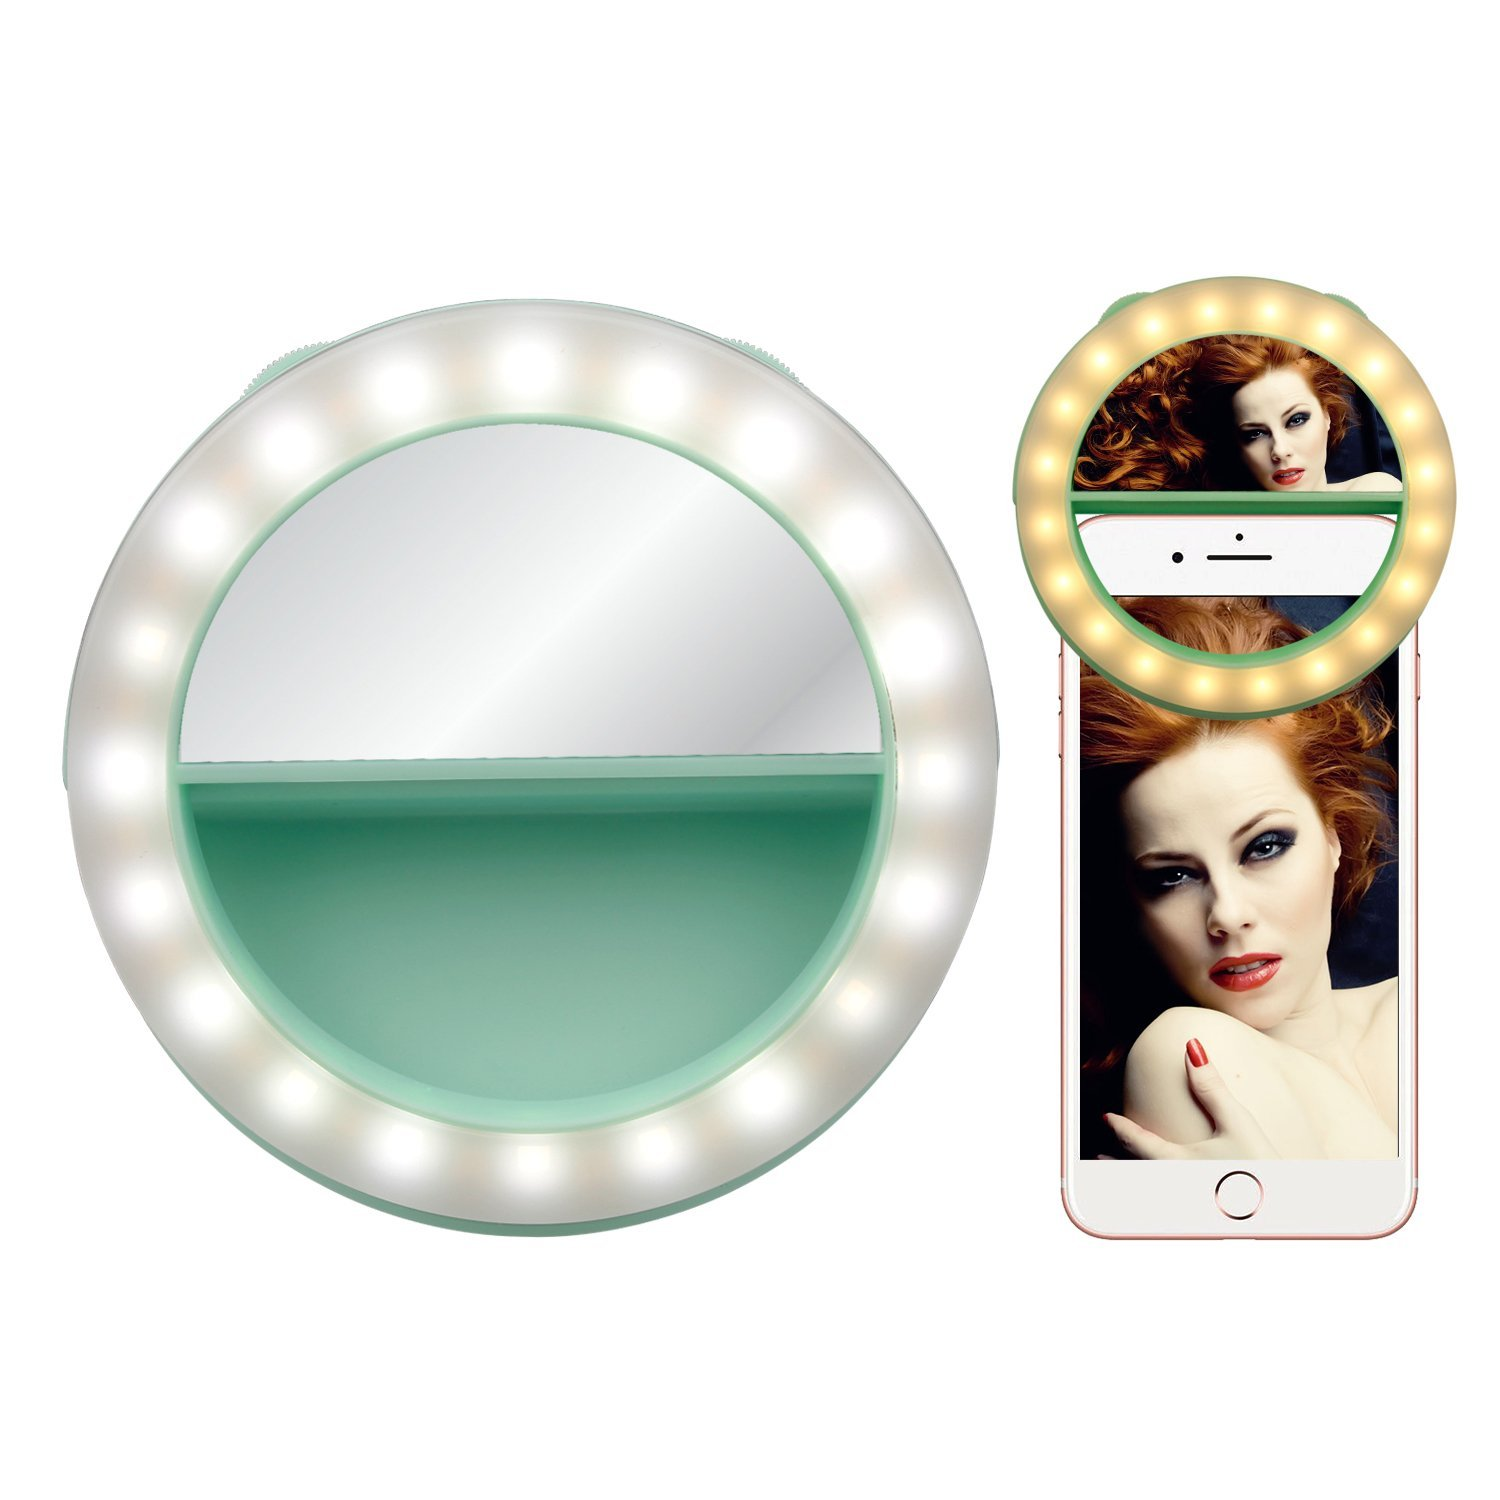 Selfie Ring Light for Phone, Ocathnon Ring Light for Camera [Rechargable Battery] Selfie LED Camera Light with Make-up Mirror [40LED] for iPhone Samsung Galaxy Photography Video